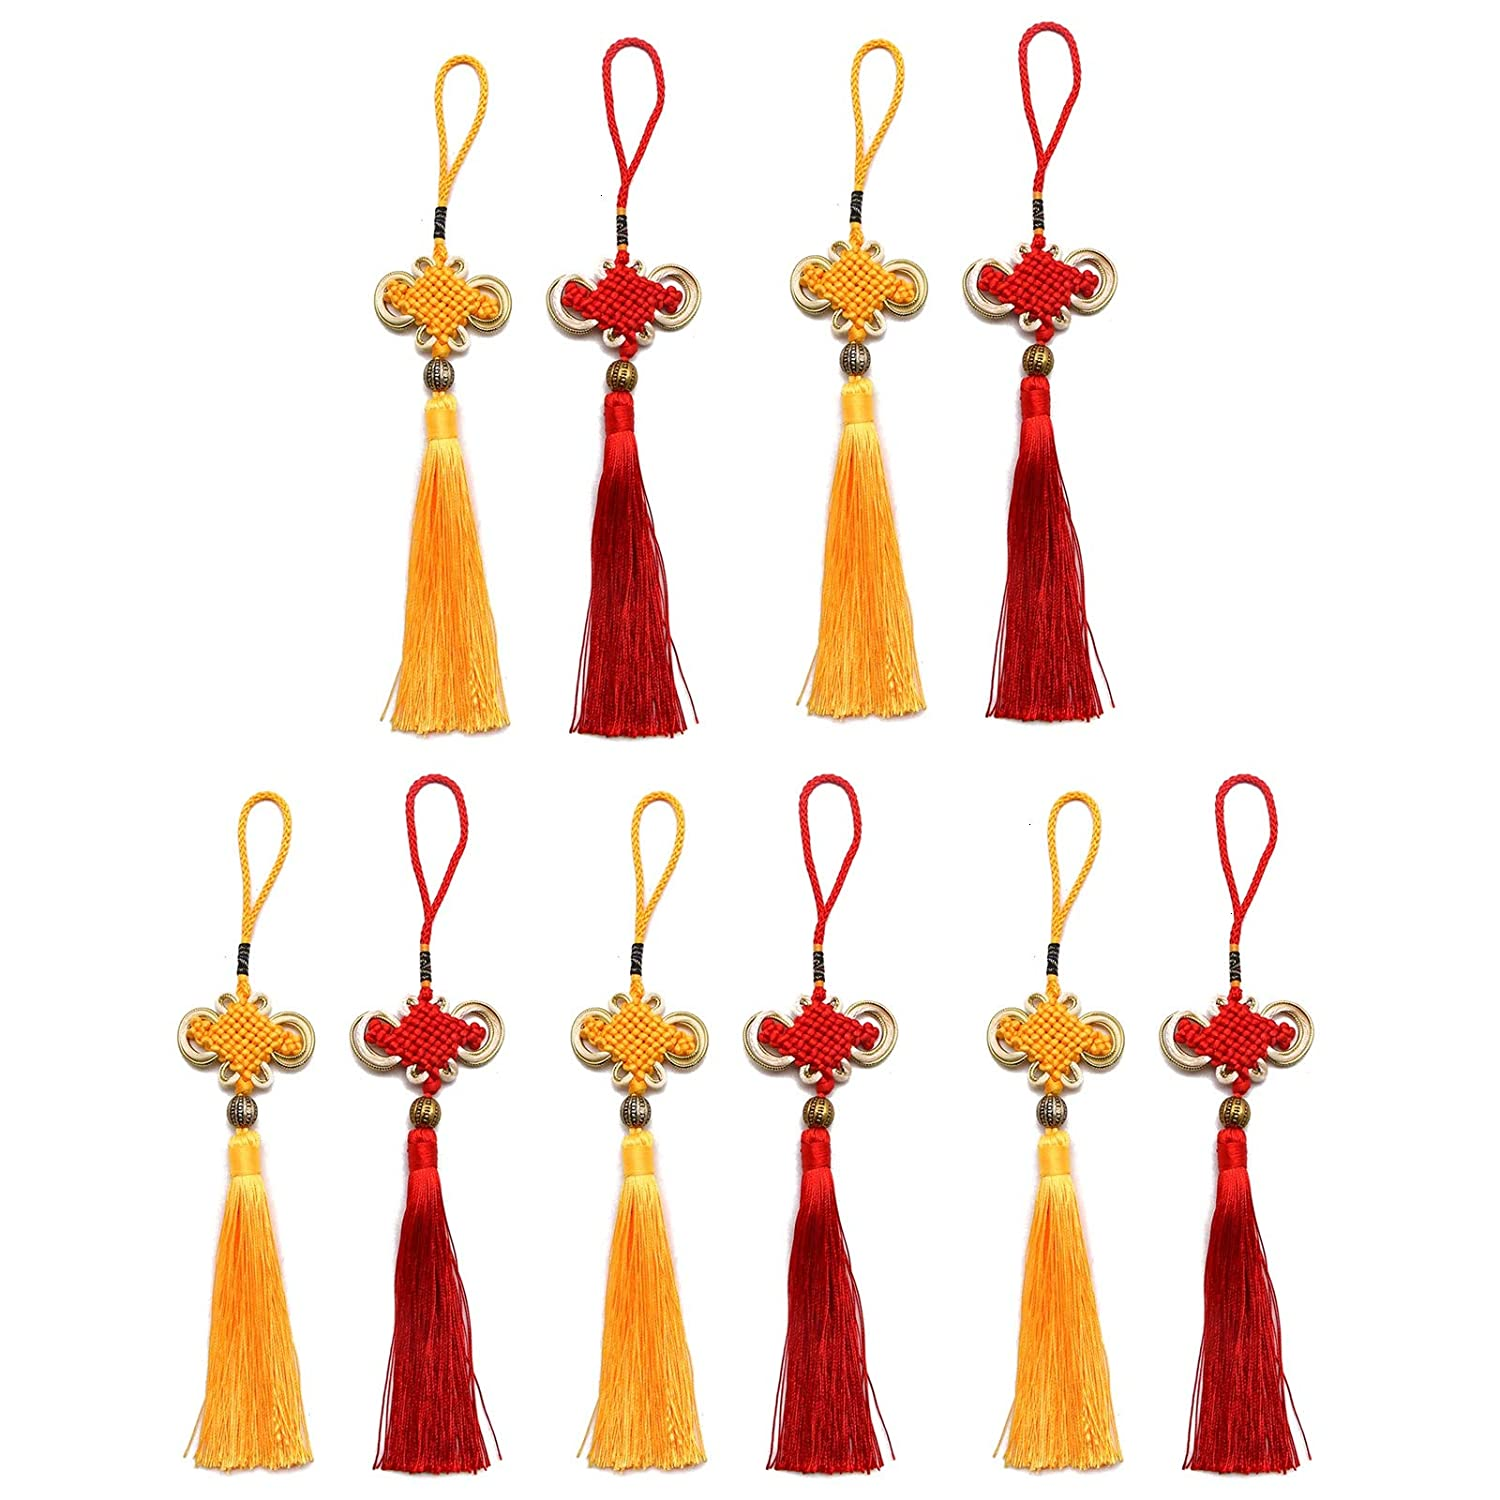 Golden Yellow and Red WSSROGY 10Pcs Chinese Knots Soft Tassels with Satin Silk Chinese Lucky Knots Symbol of Wealth Good Fortune and Health